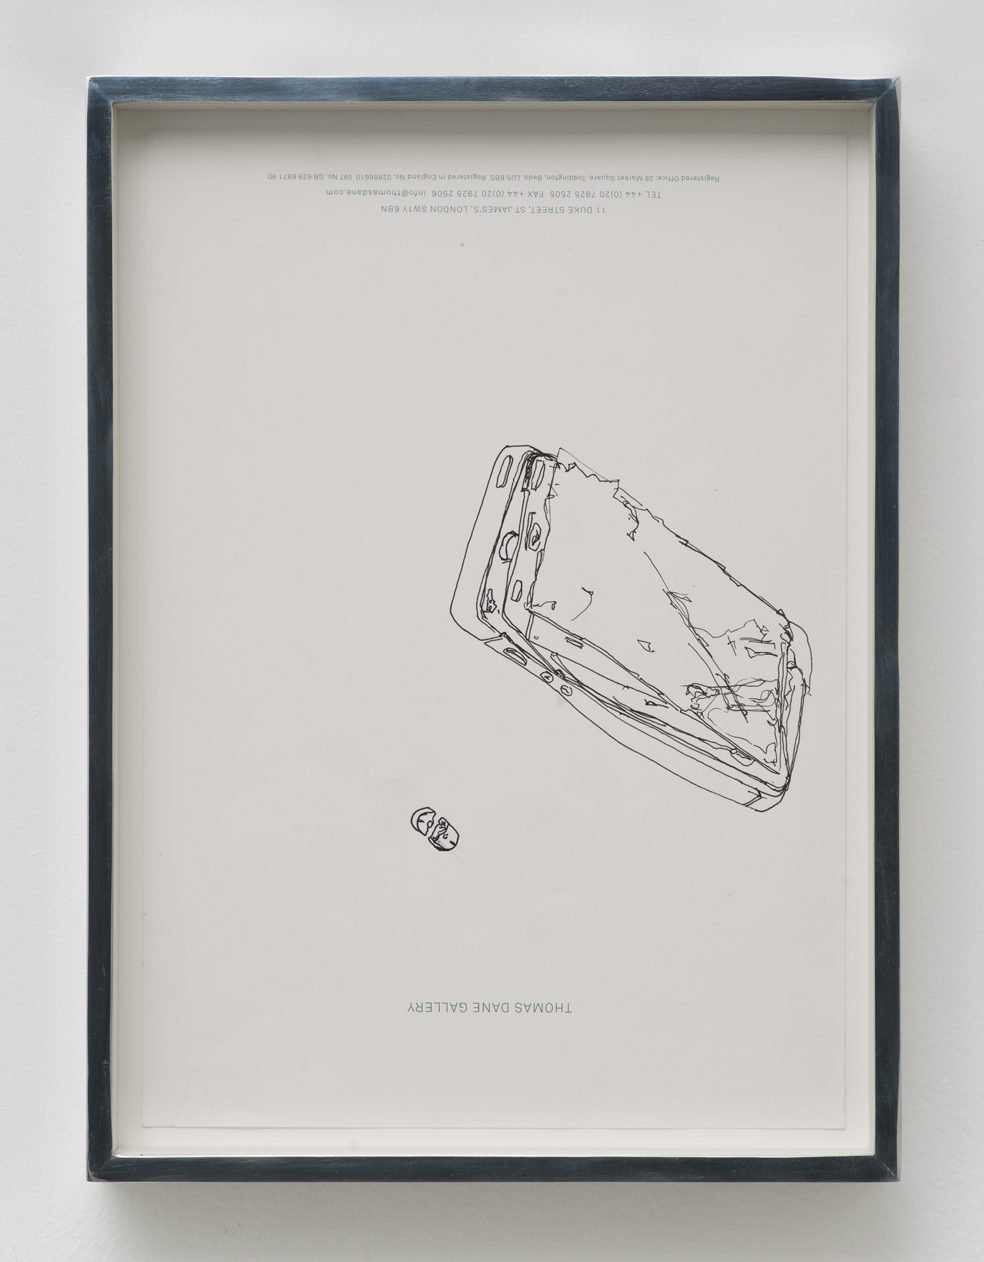 iPhone 5 A1429/Adderall, Amphetamine and Dextroamphetamine 10 mg, cor 132, Round, Multi-Segmented, Core Pharmaceuticals, Inc.: Thomas Dane Gallery, London, United Kingdom, September 27, 2014    2015   Ink on letterhead  12 7/8 x 9 1/2 inches   Walid AlBeshti, 2015